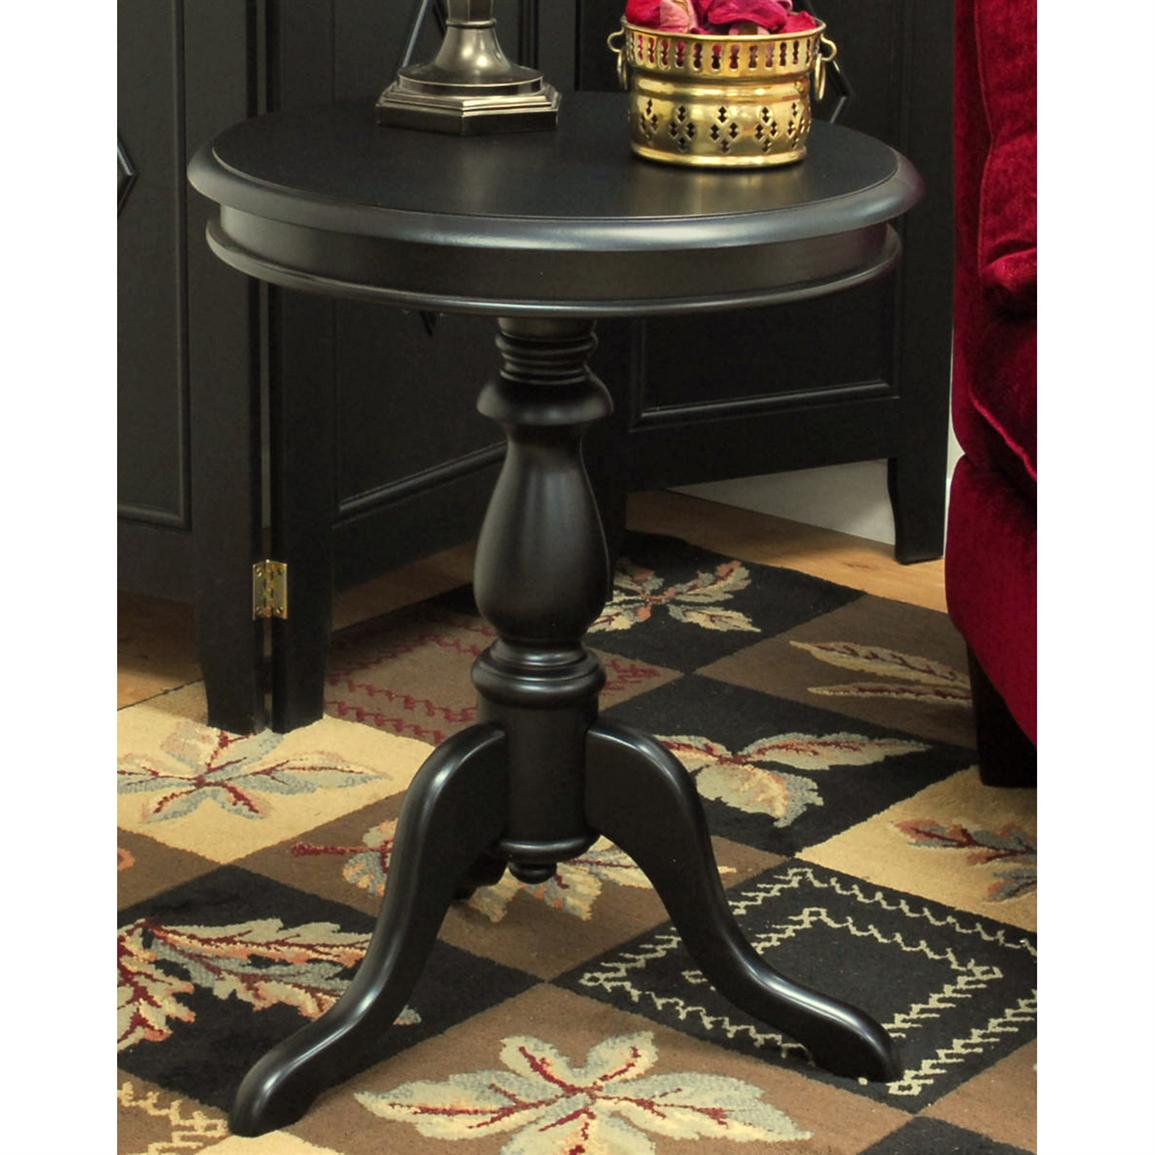 Carolina Chair & Table Co. Hepburn Pedestal Accent Table, Antique Black